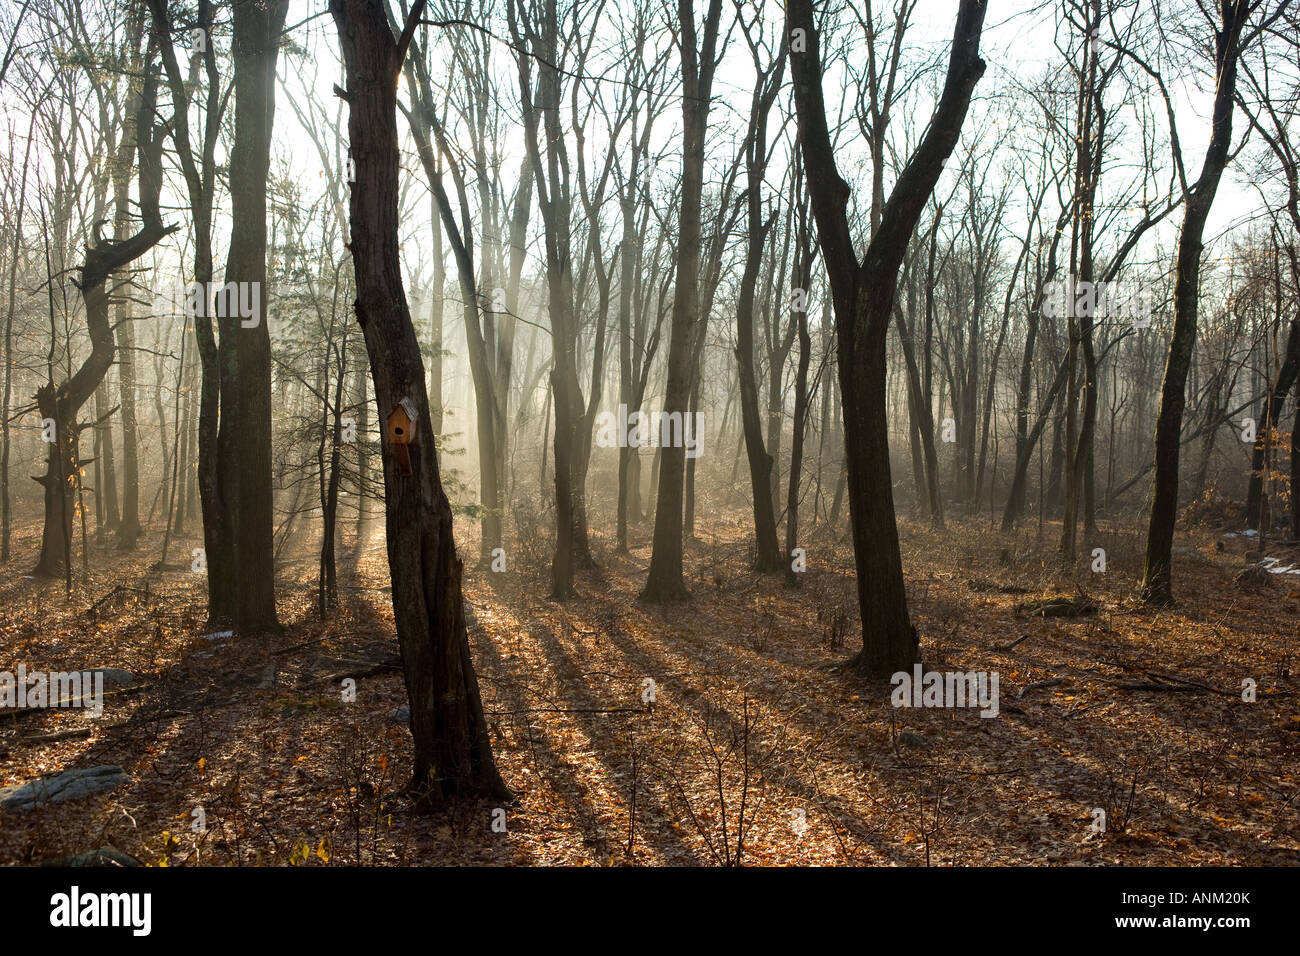 Forest with mist and fog in early morning in Madison, Connecticut USA. 'New England'. - Stock Image